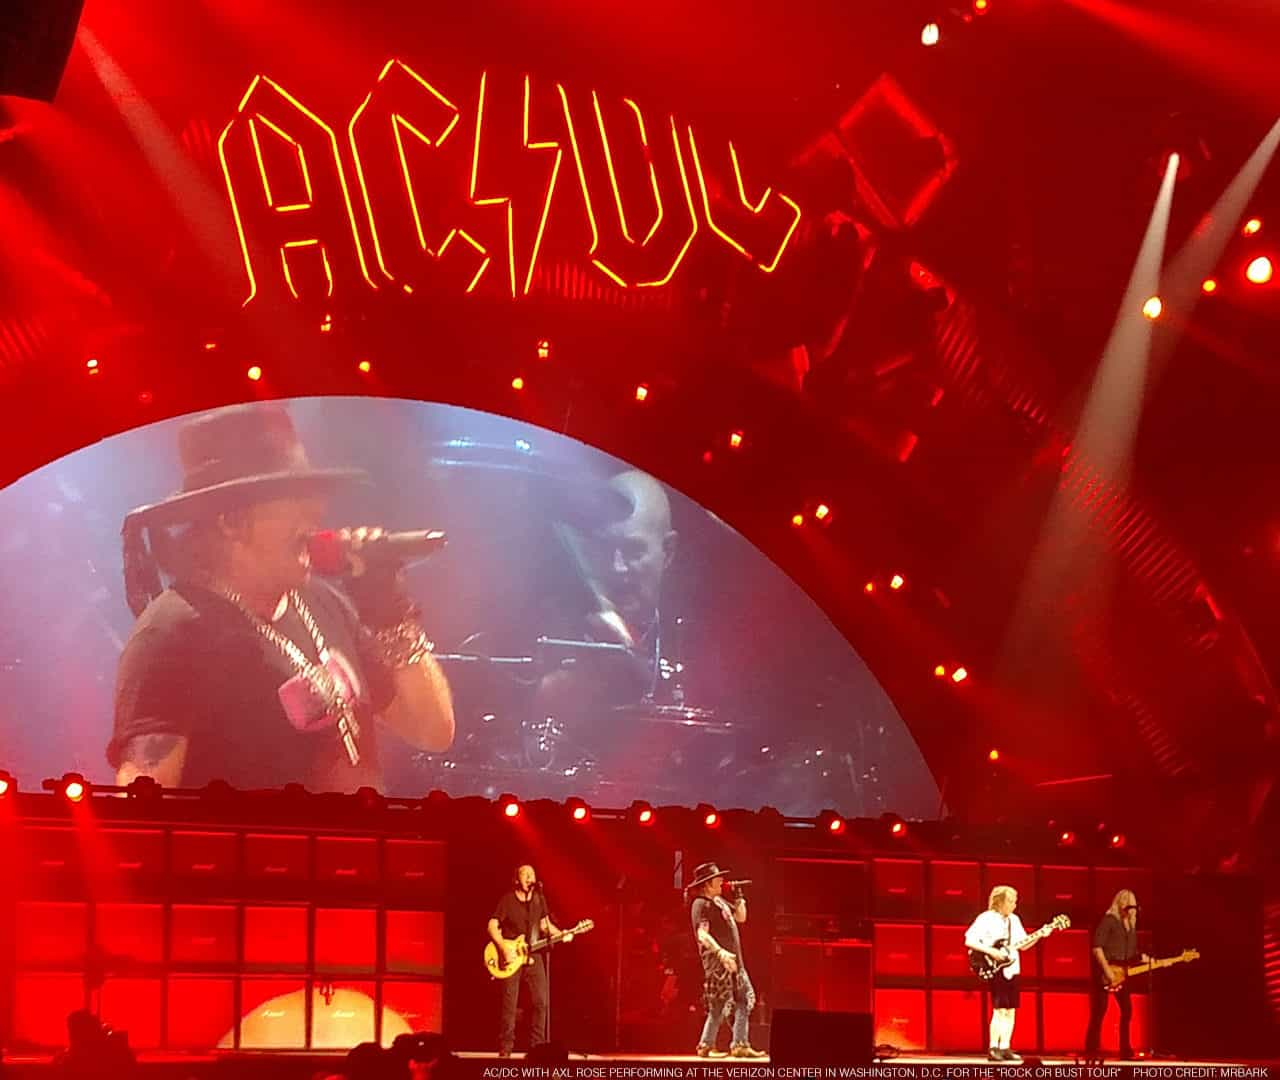 "AC/DC with Axl Rose performing at the Verizon Center in Washington, D.C. for the ""Rock or Bust Tour"" on September 17, 2016. On stage from left to right: Stevie Young, Axl Rose, (obscured behind Axl but visible on the monitor, Chris Slade), Angus Young, and Cliff Williams"